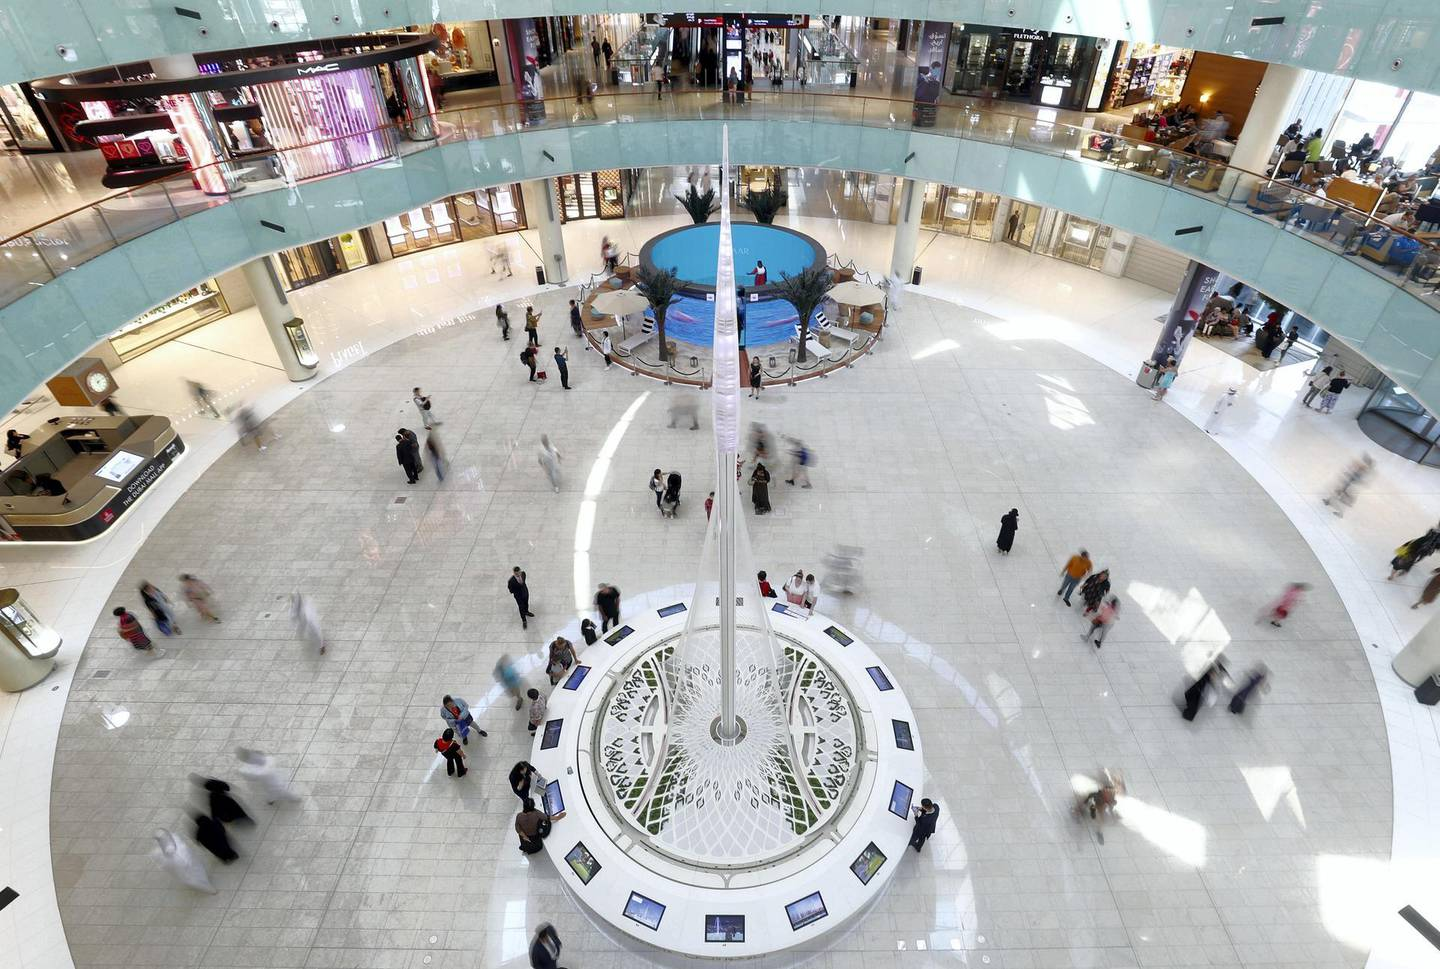 Dubai, United Arab Emirates - September 21, 2019: Standalone. A busy afternoon at Dubai mall as people shop at the weekend in front of the Dubai Creek Tower model. Saturday the 21st of September 2019. Dubai Mall, Dubai. Chris Whiteoak / The National